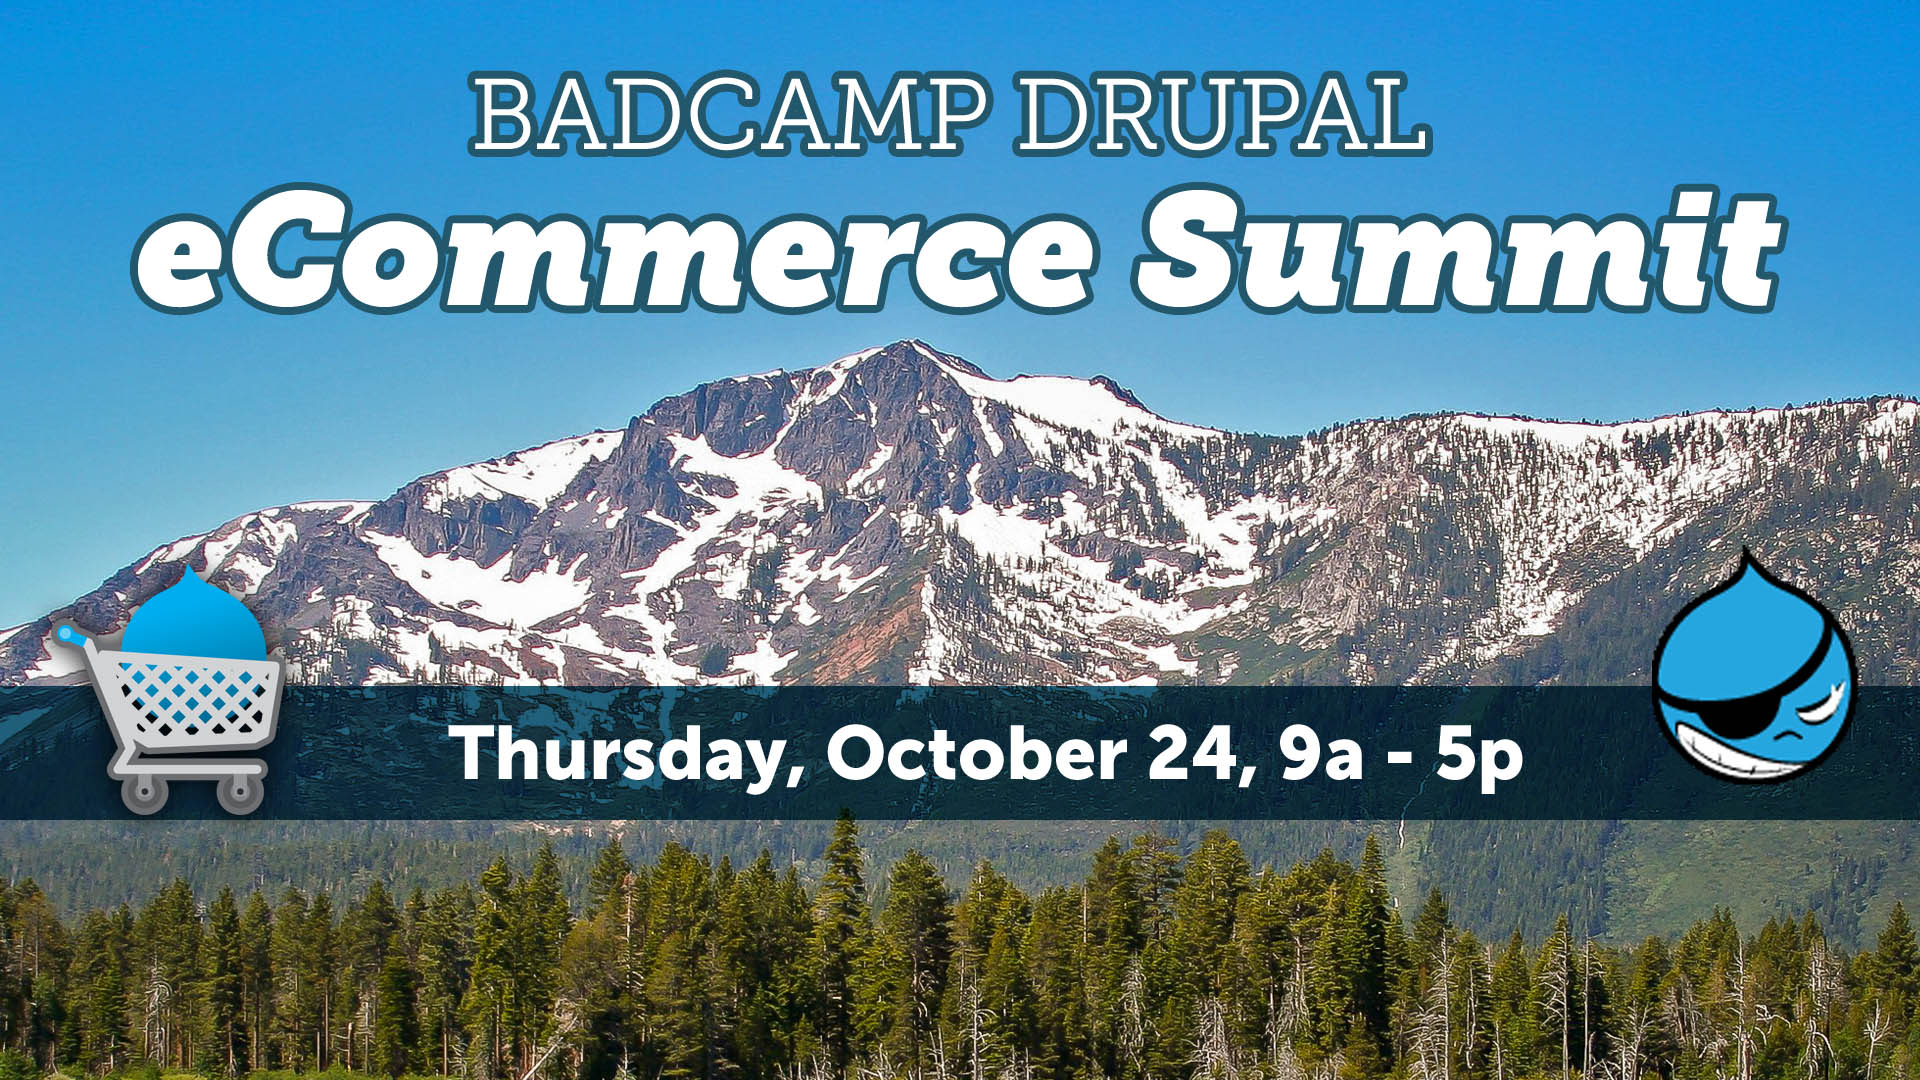 BADCamp Drupal eCommerce Summit